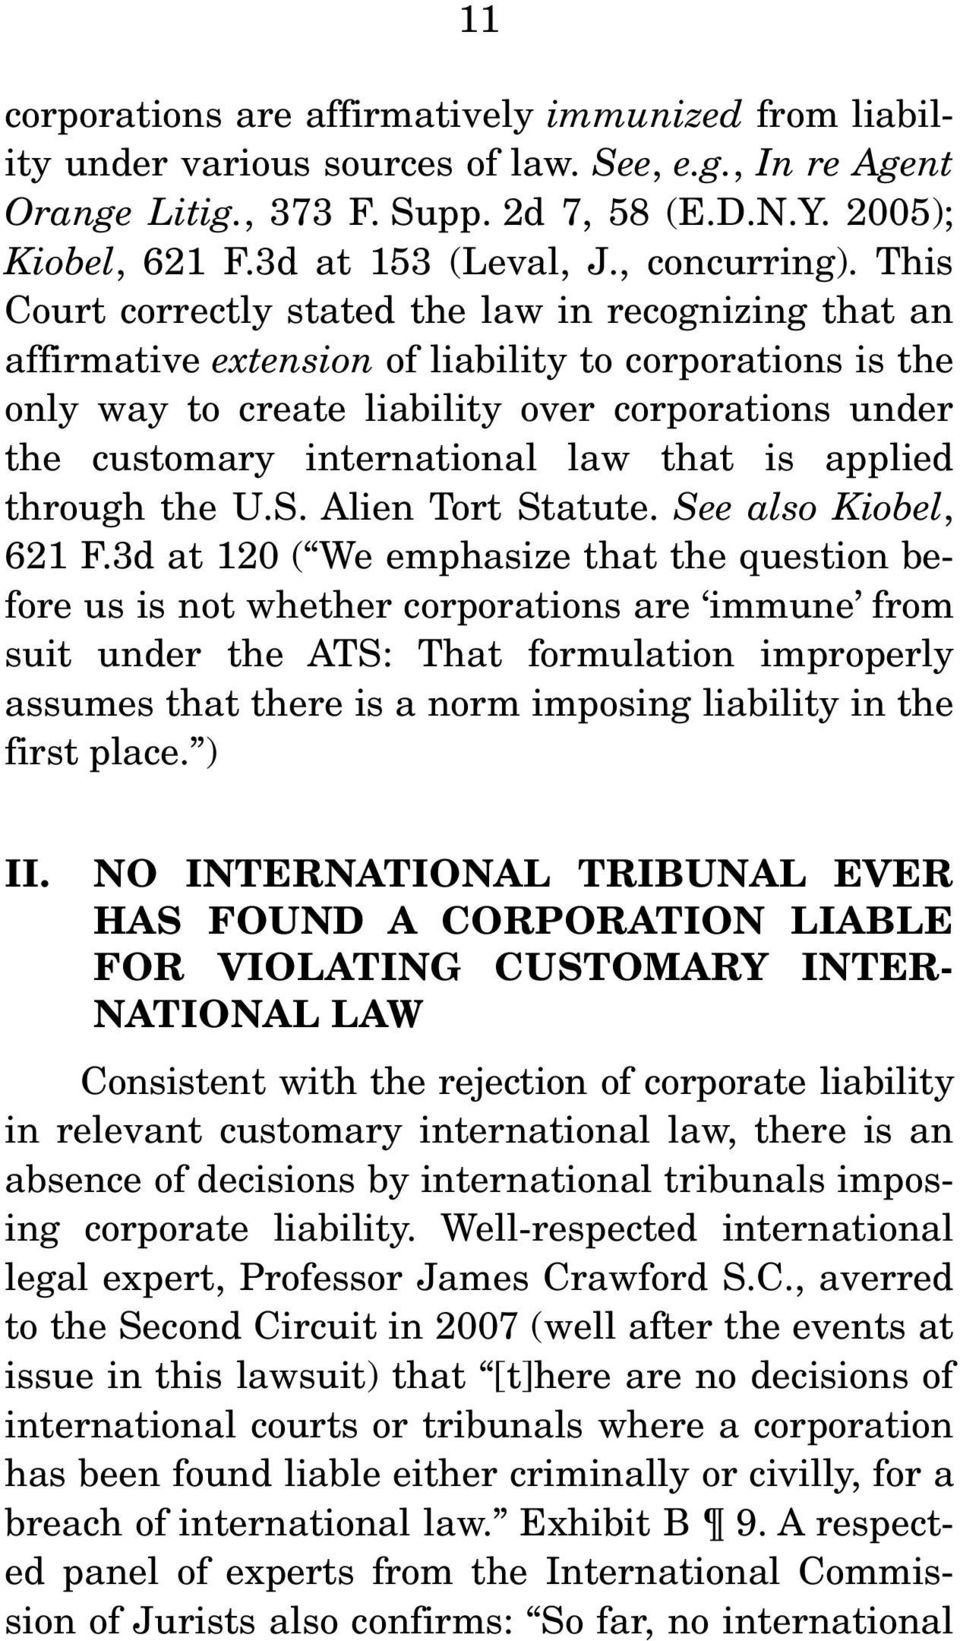 This Court correctly stated the law in recognizing that an affirmative extension of liability to corporations is the only way to create liability over corporations under the customary international